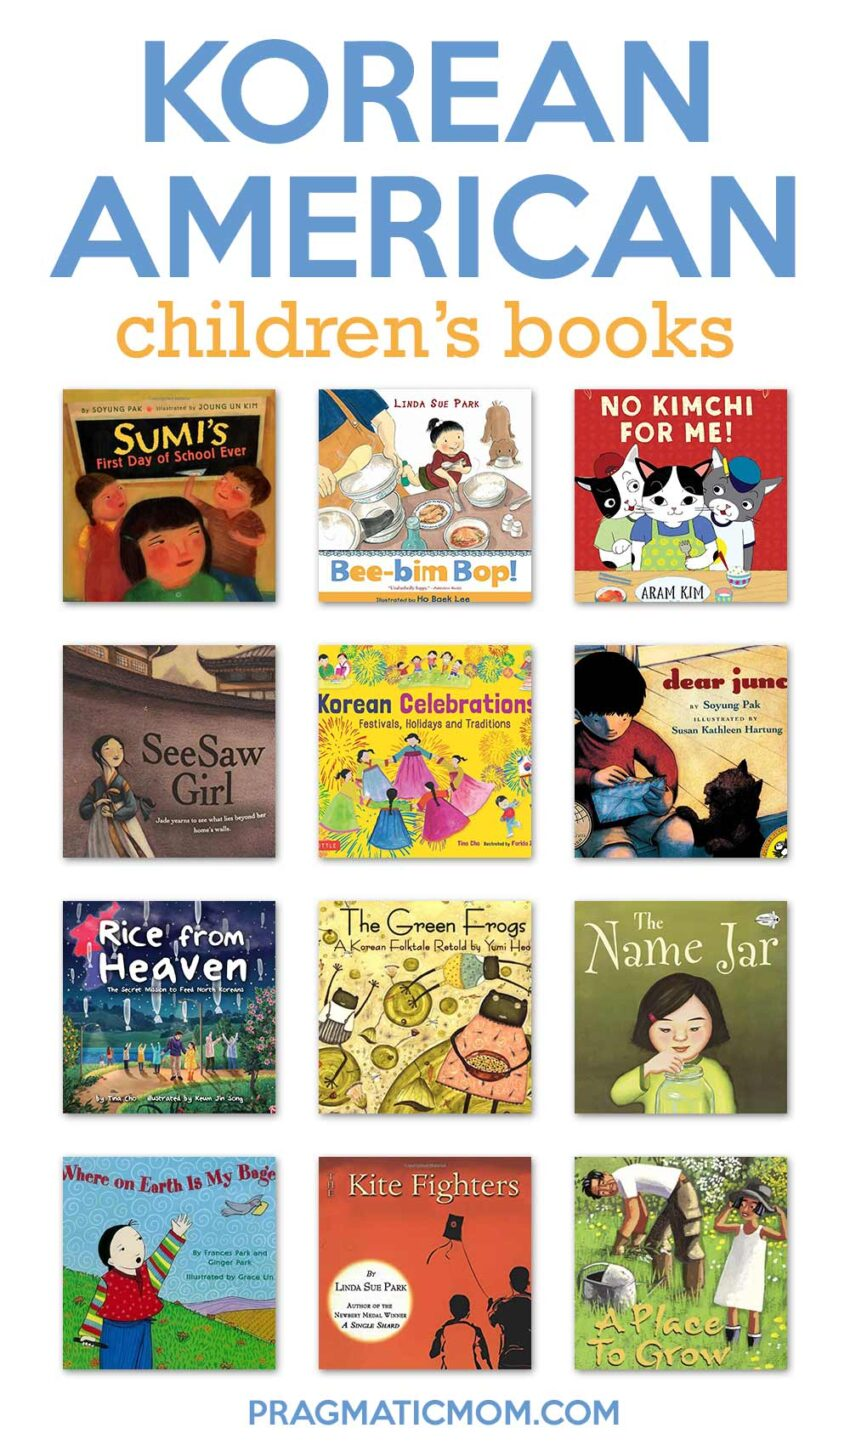 Korean American Children's Books